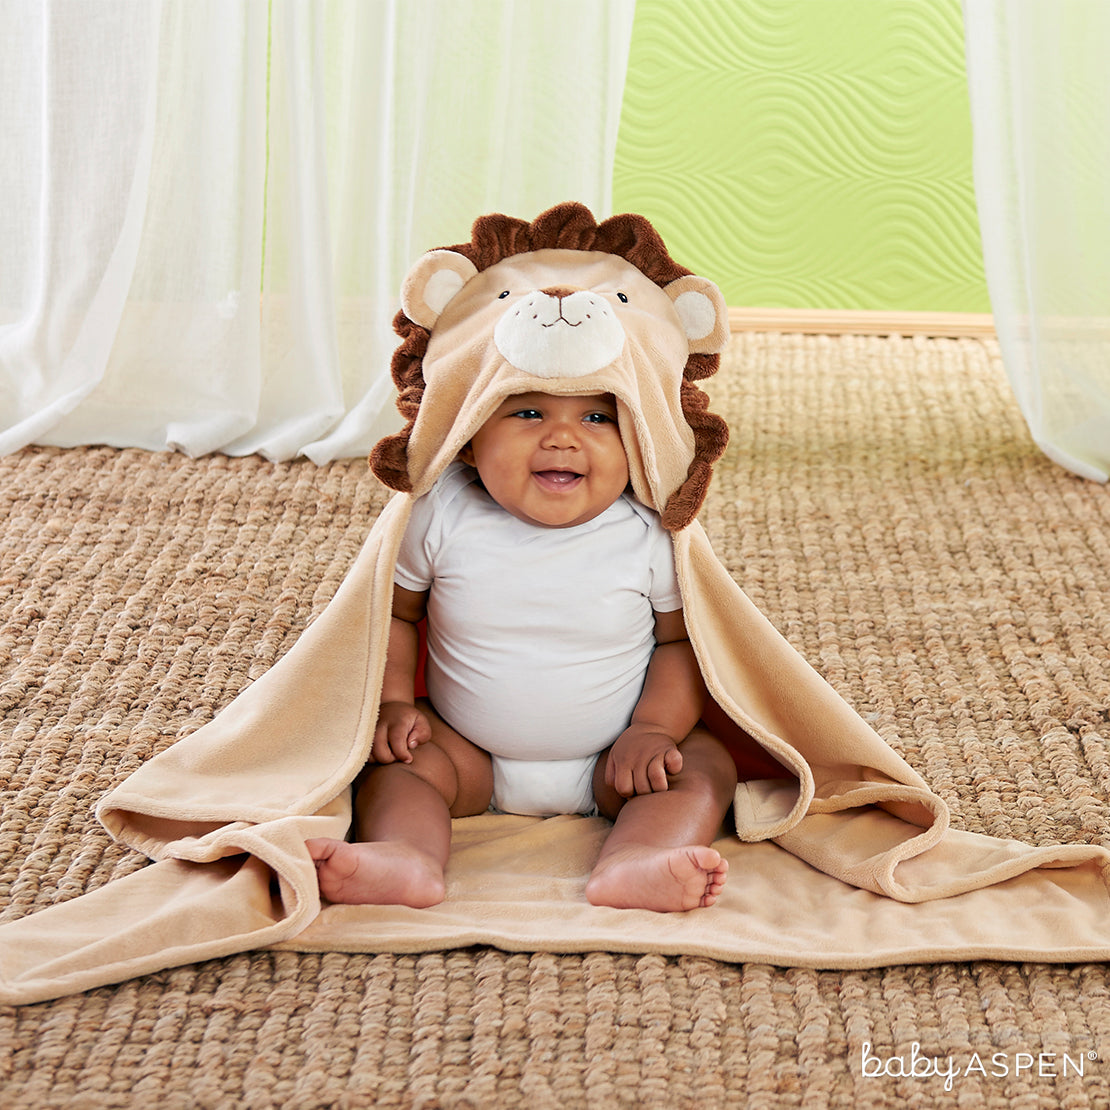 Lion Hooded Blanket | 9 Ideas to Keep Baby Warm This Winter | Baby Aspen